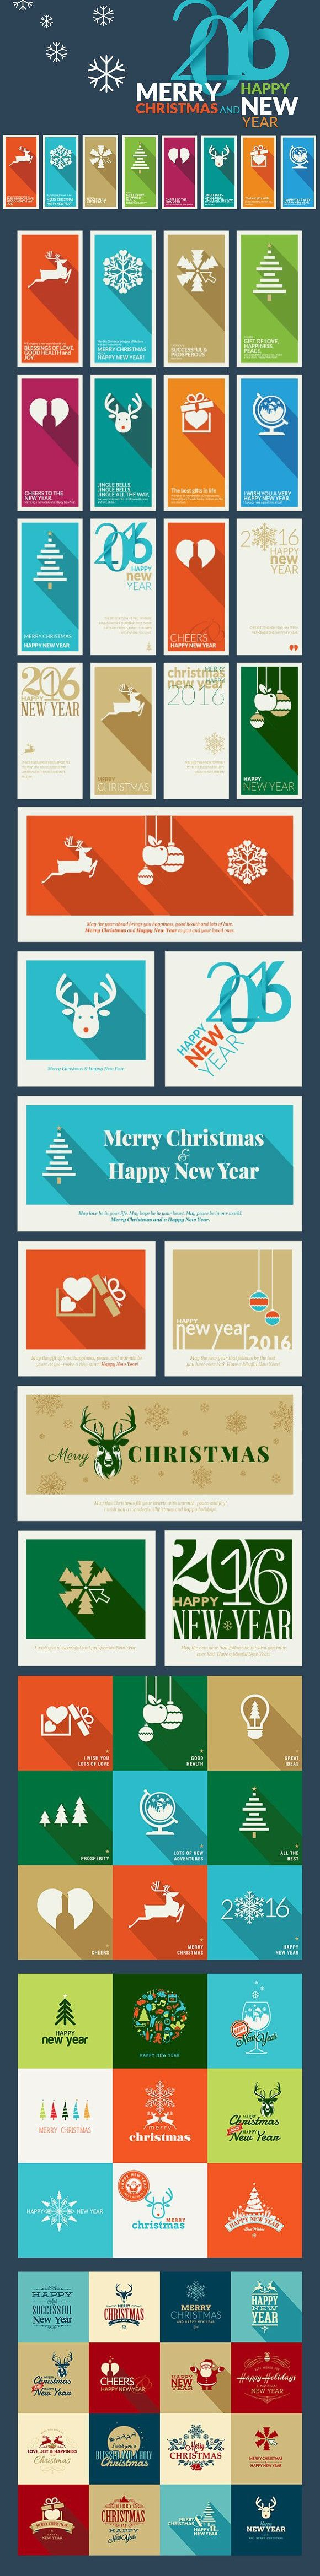 18 best Creative Holiday Cards images on Pinterest